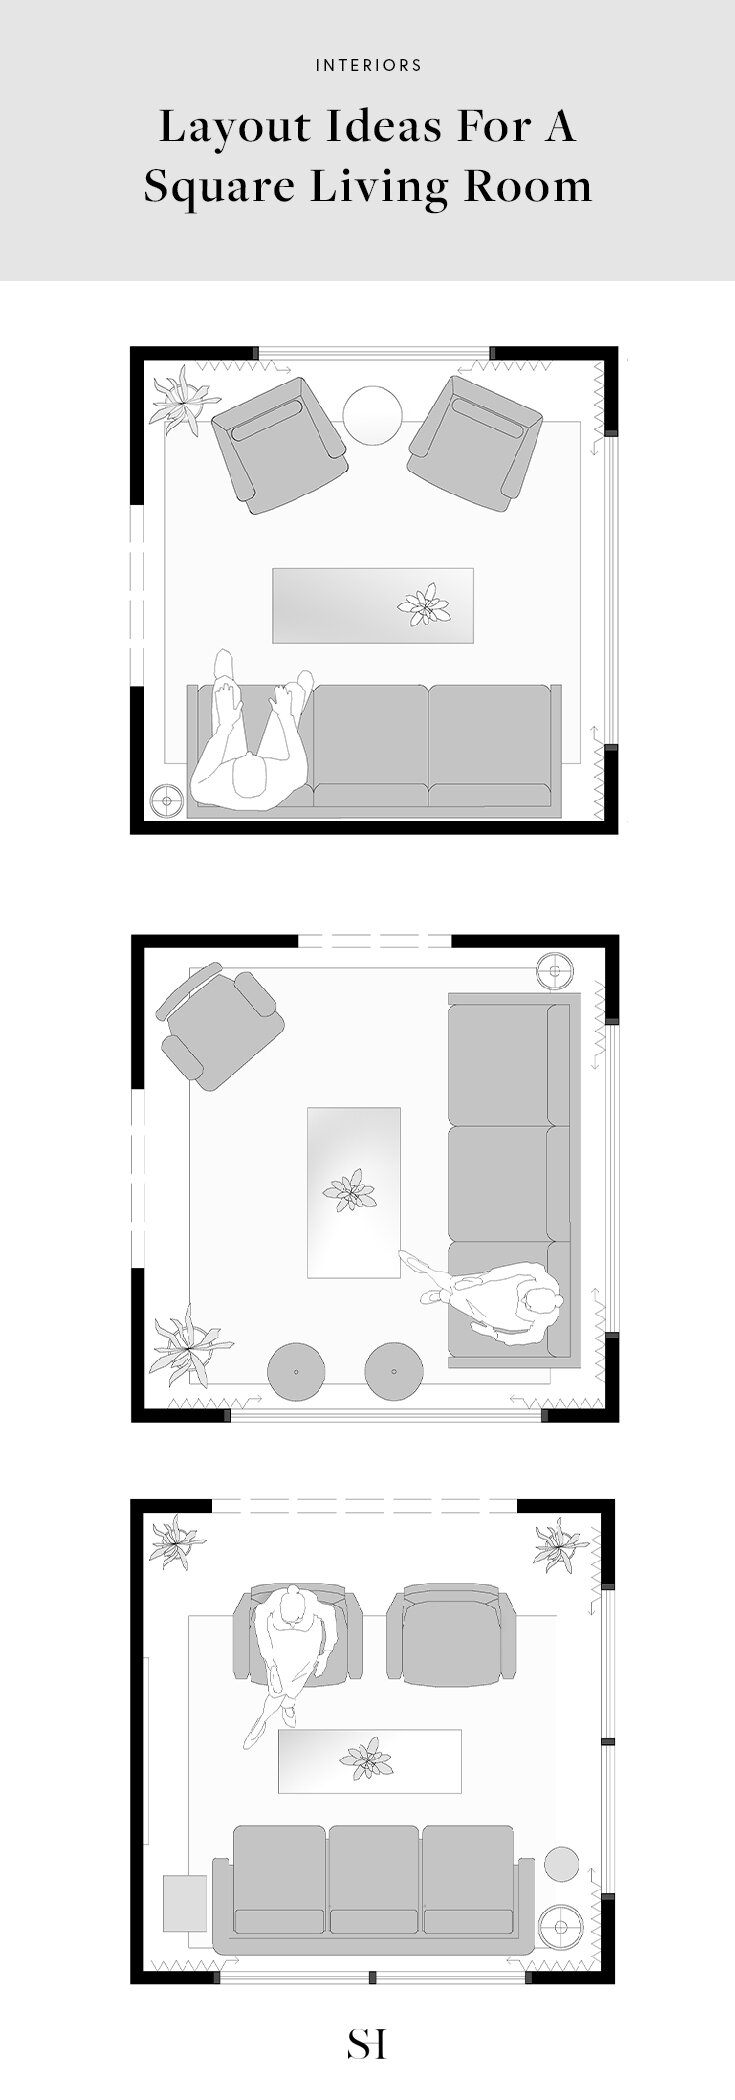 square-living-room-layout-and-furniture-arrangement-ideas-by-the-savvy-heart.jpg